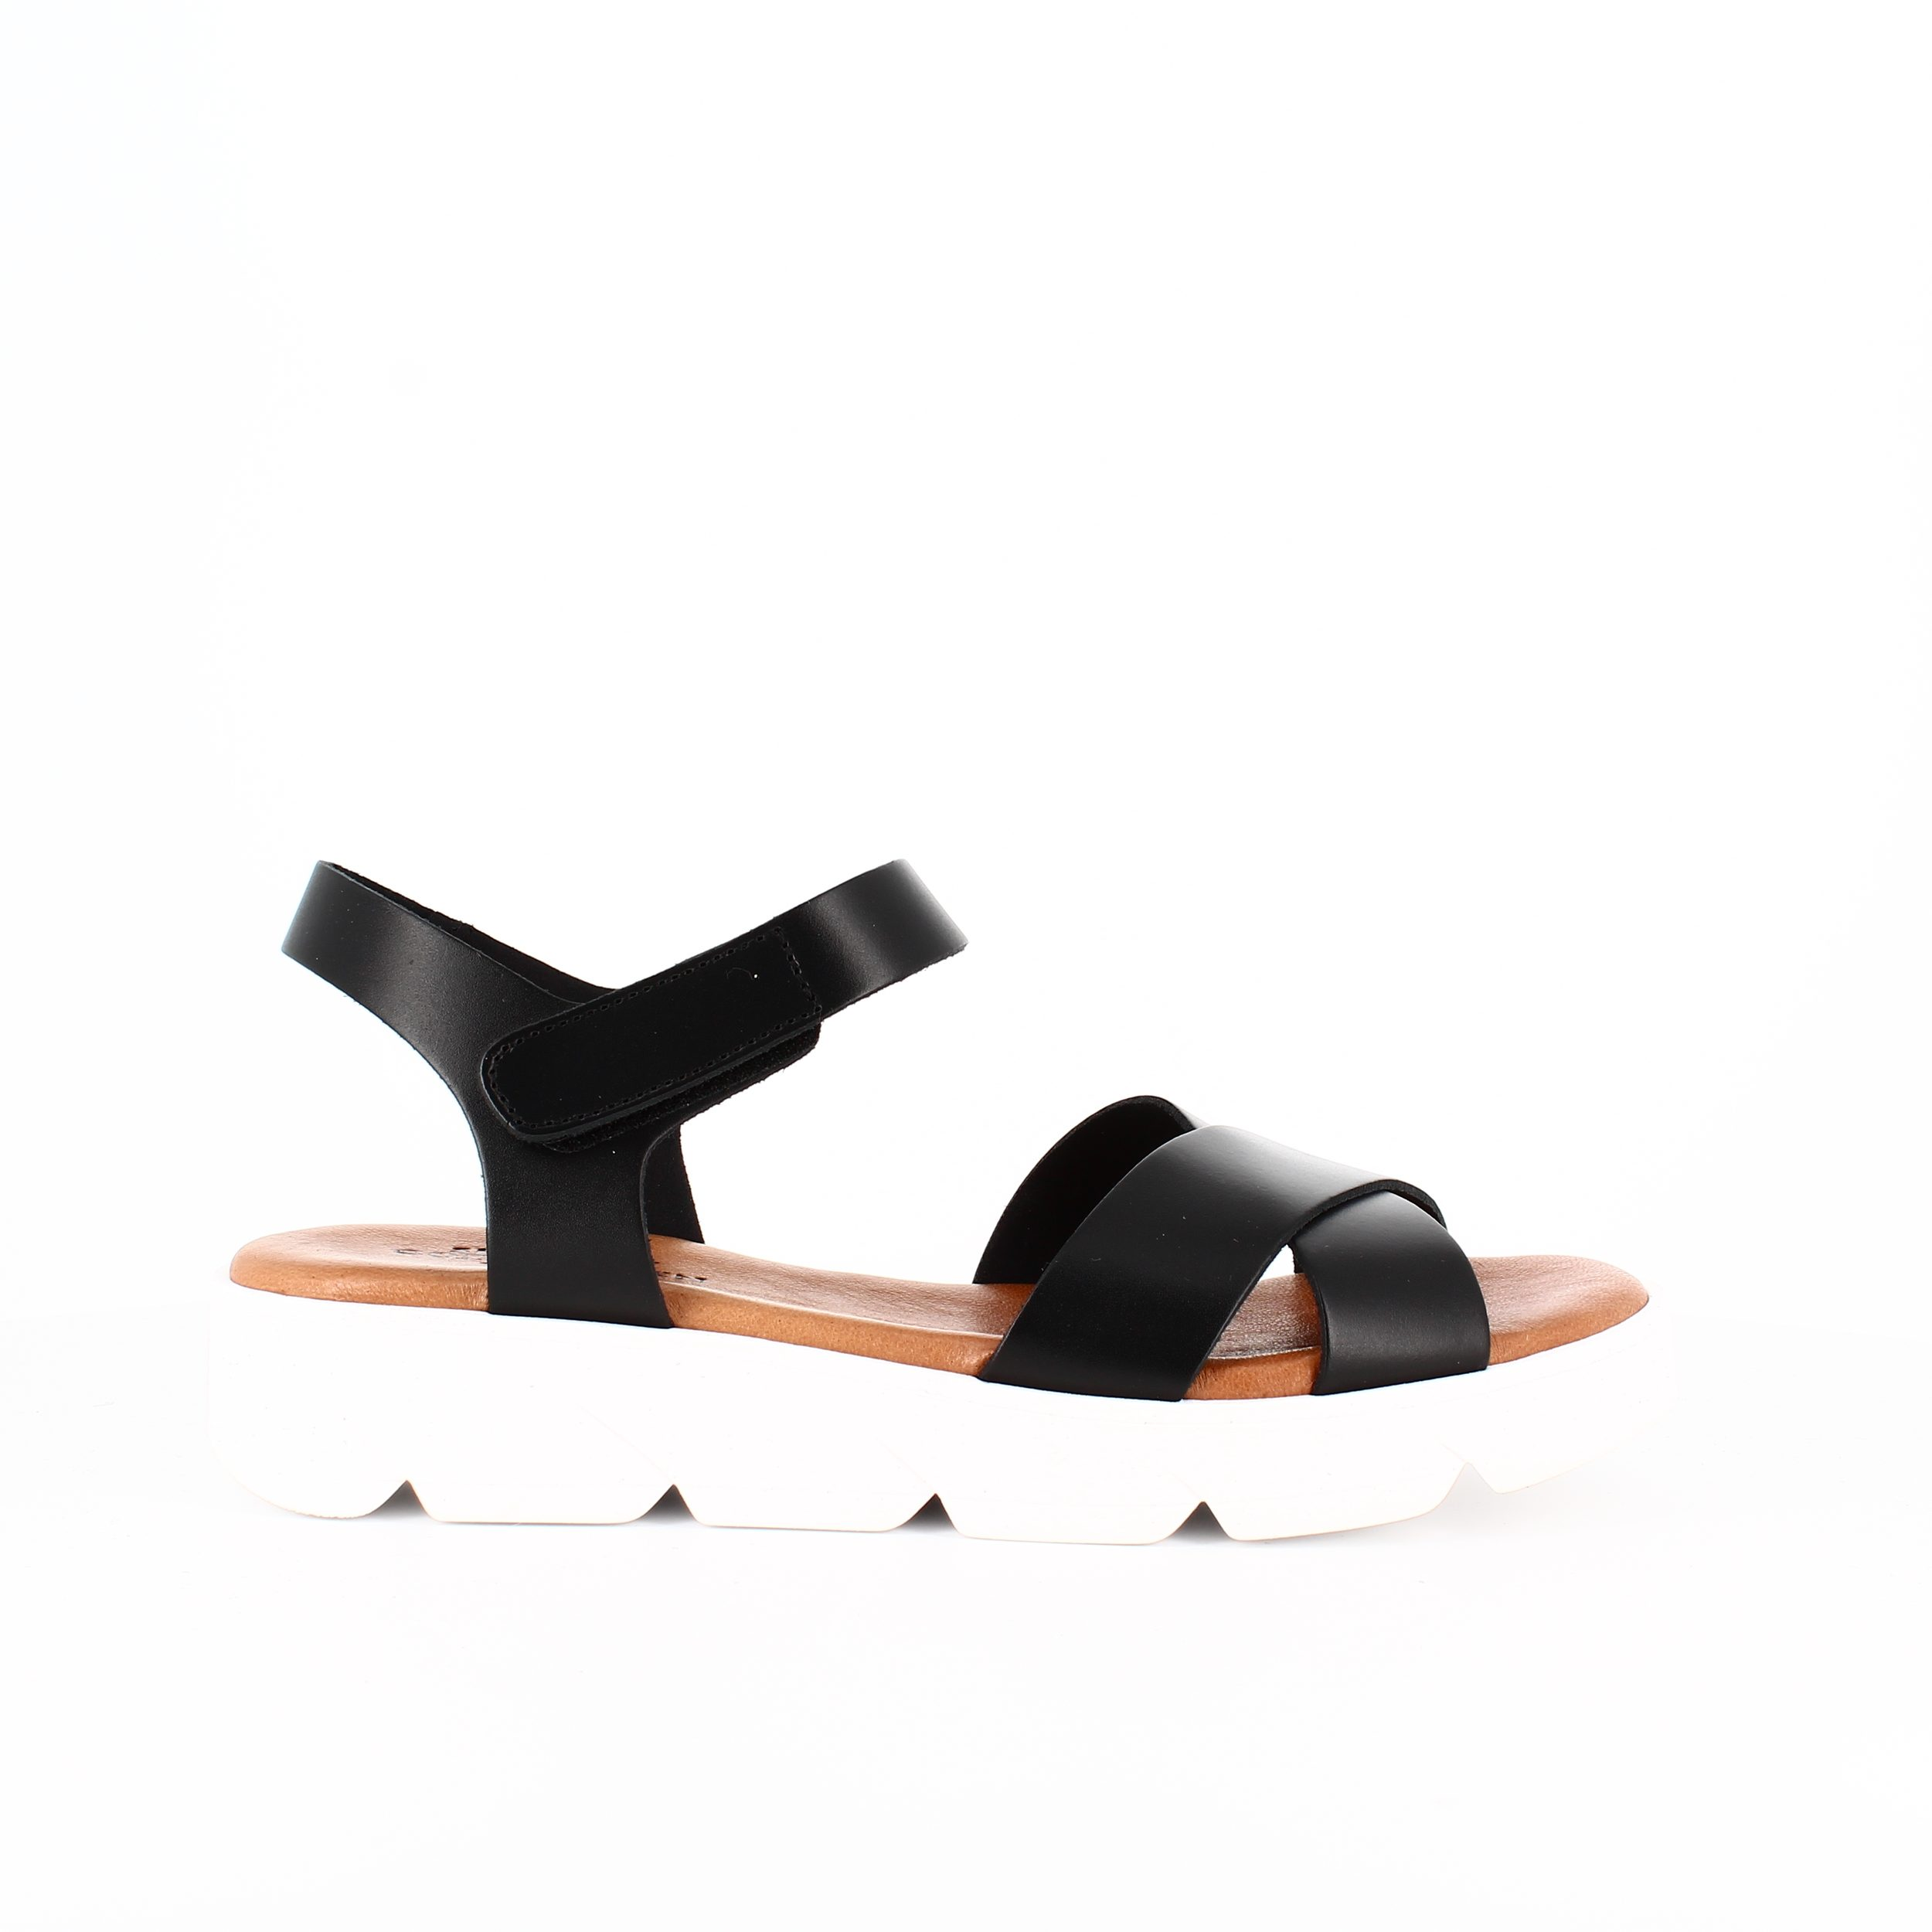 Image of   Shoe Biz Copenhagen Tatu sort sandal - 37